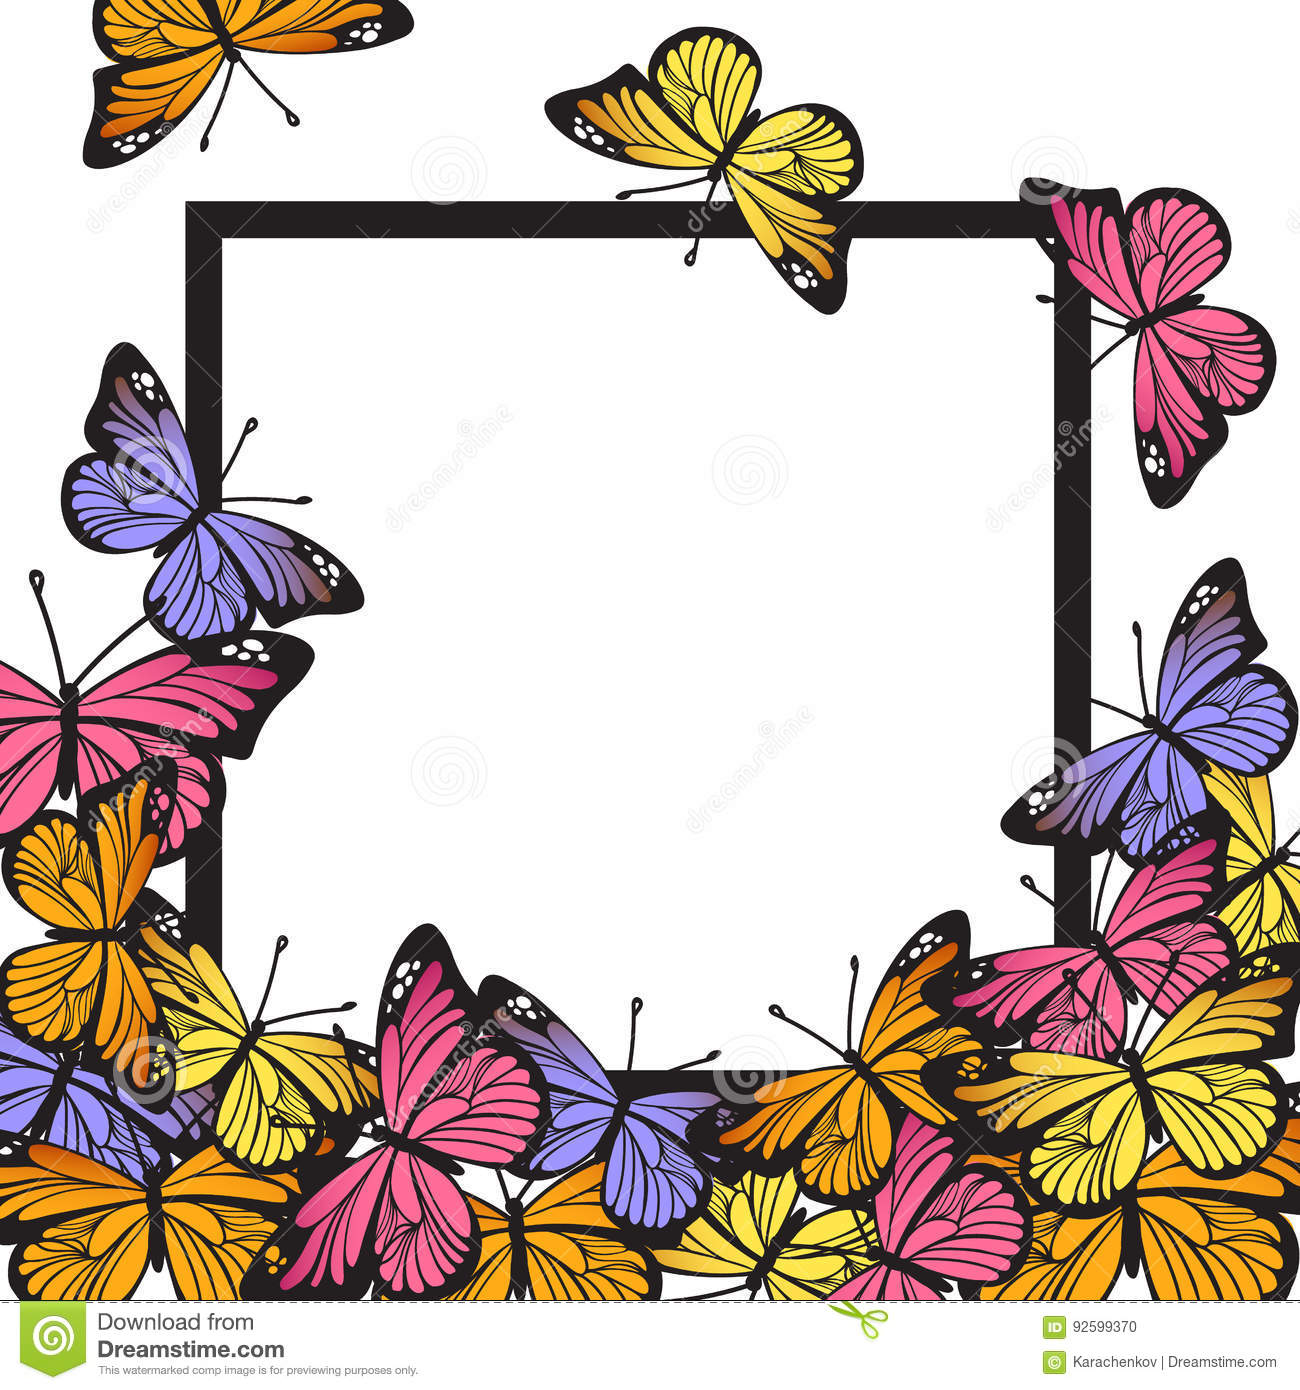 Greeting card with hand drawn butterflies and black simple frame on white background. Vector